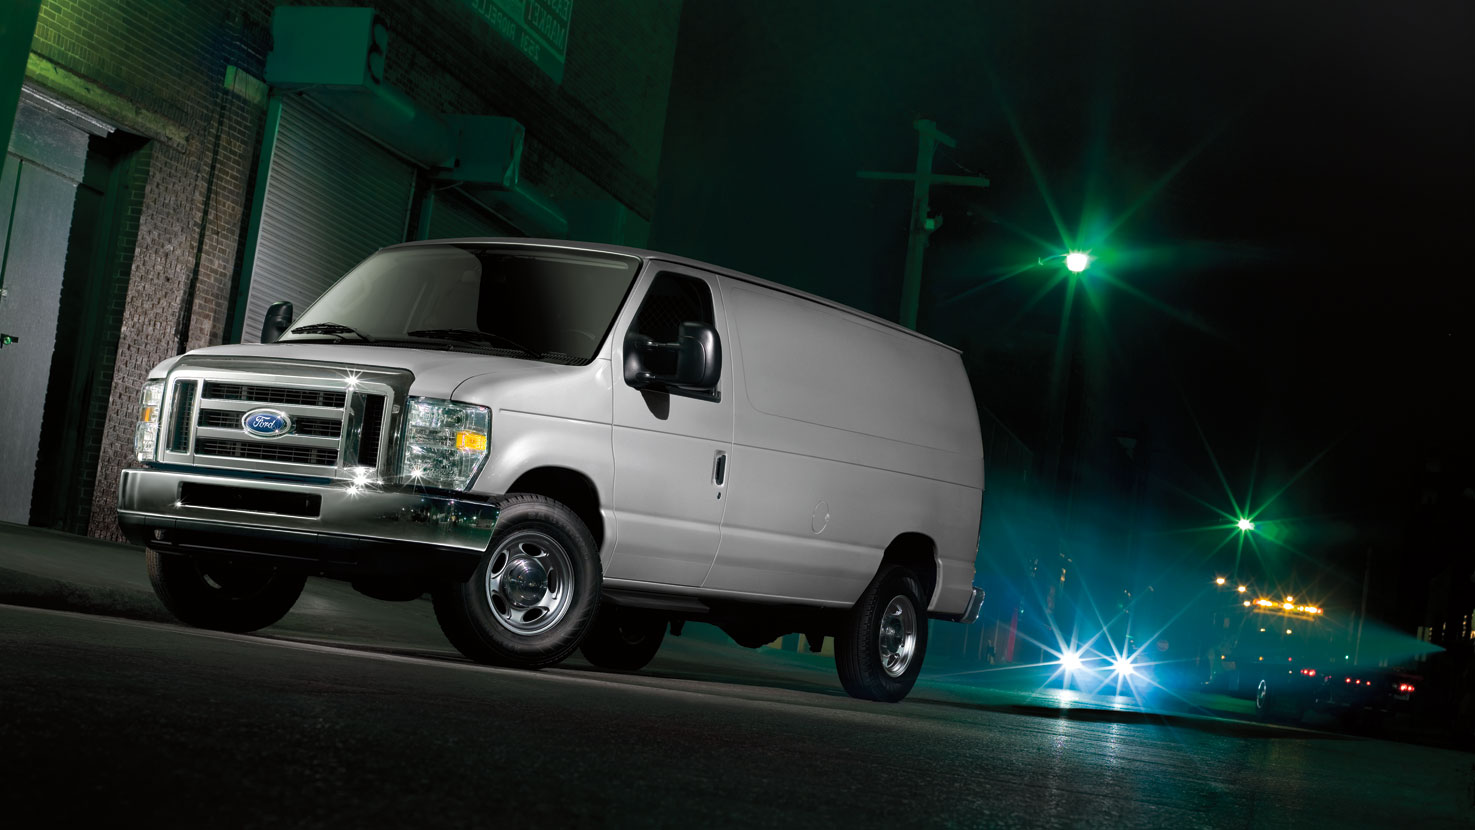 2014 Ford E-Series Van #9